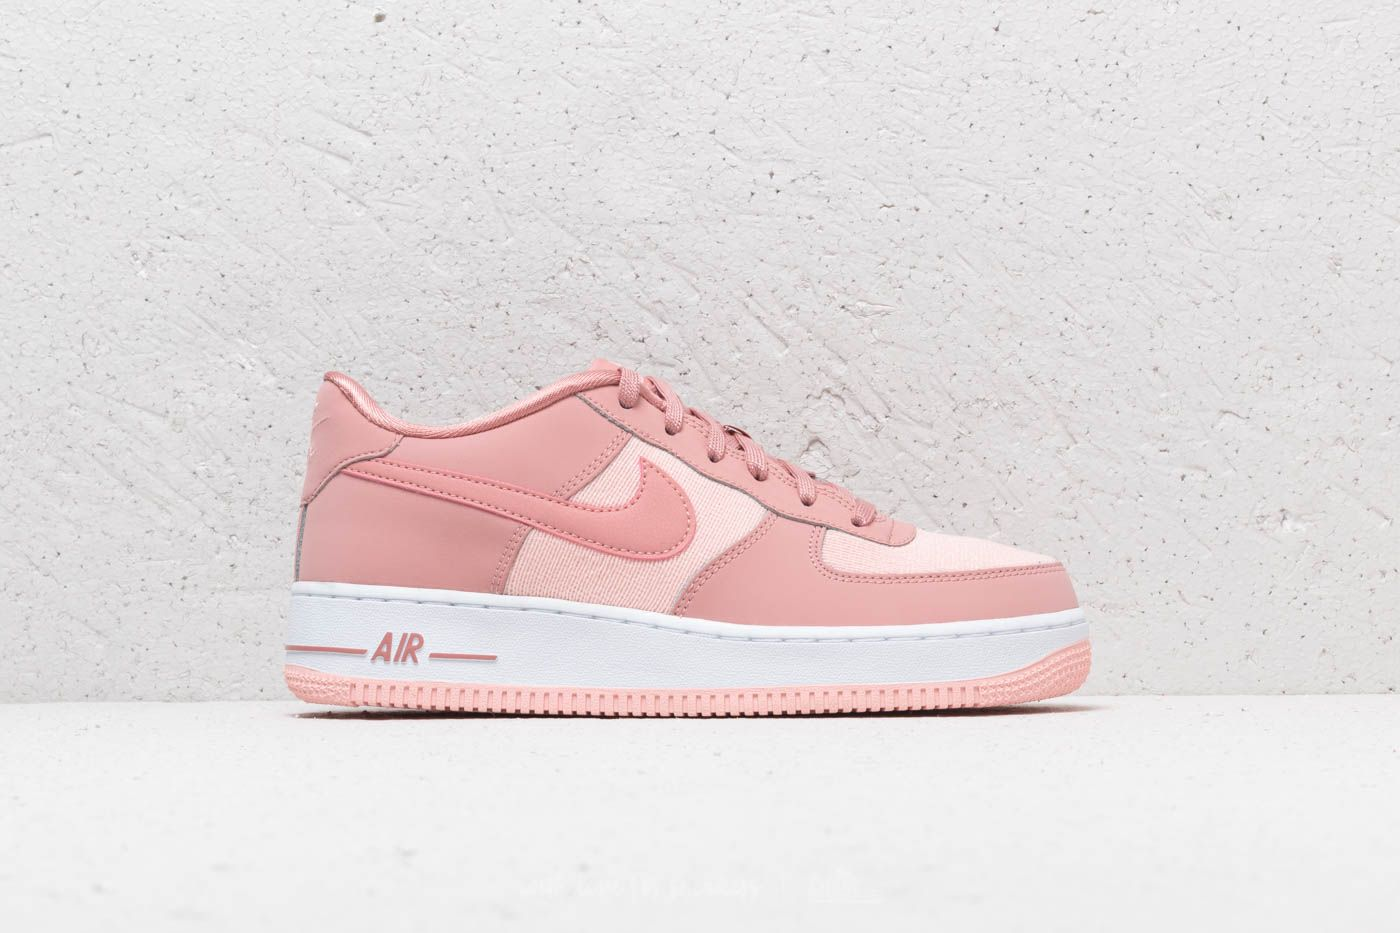 5fc12481e91 ... norway nike air force 1 lv8 gs rust pink rust pink storm pink d309c  44443